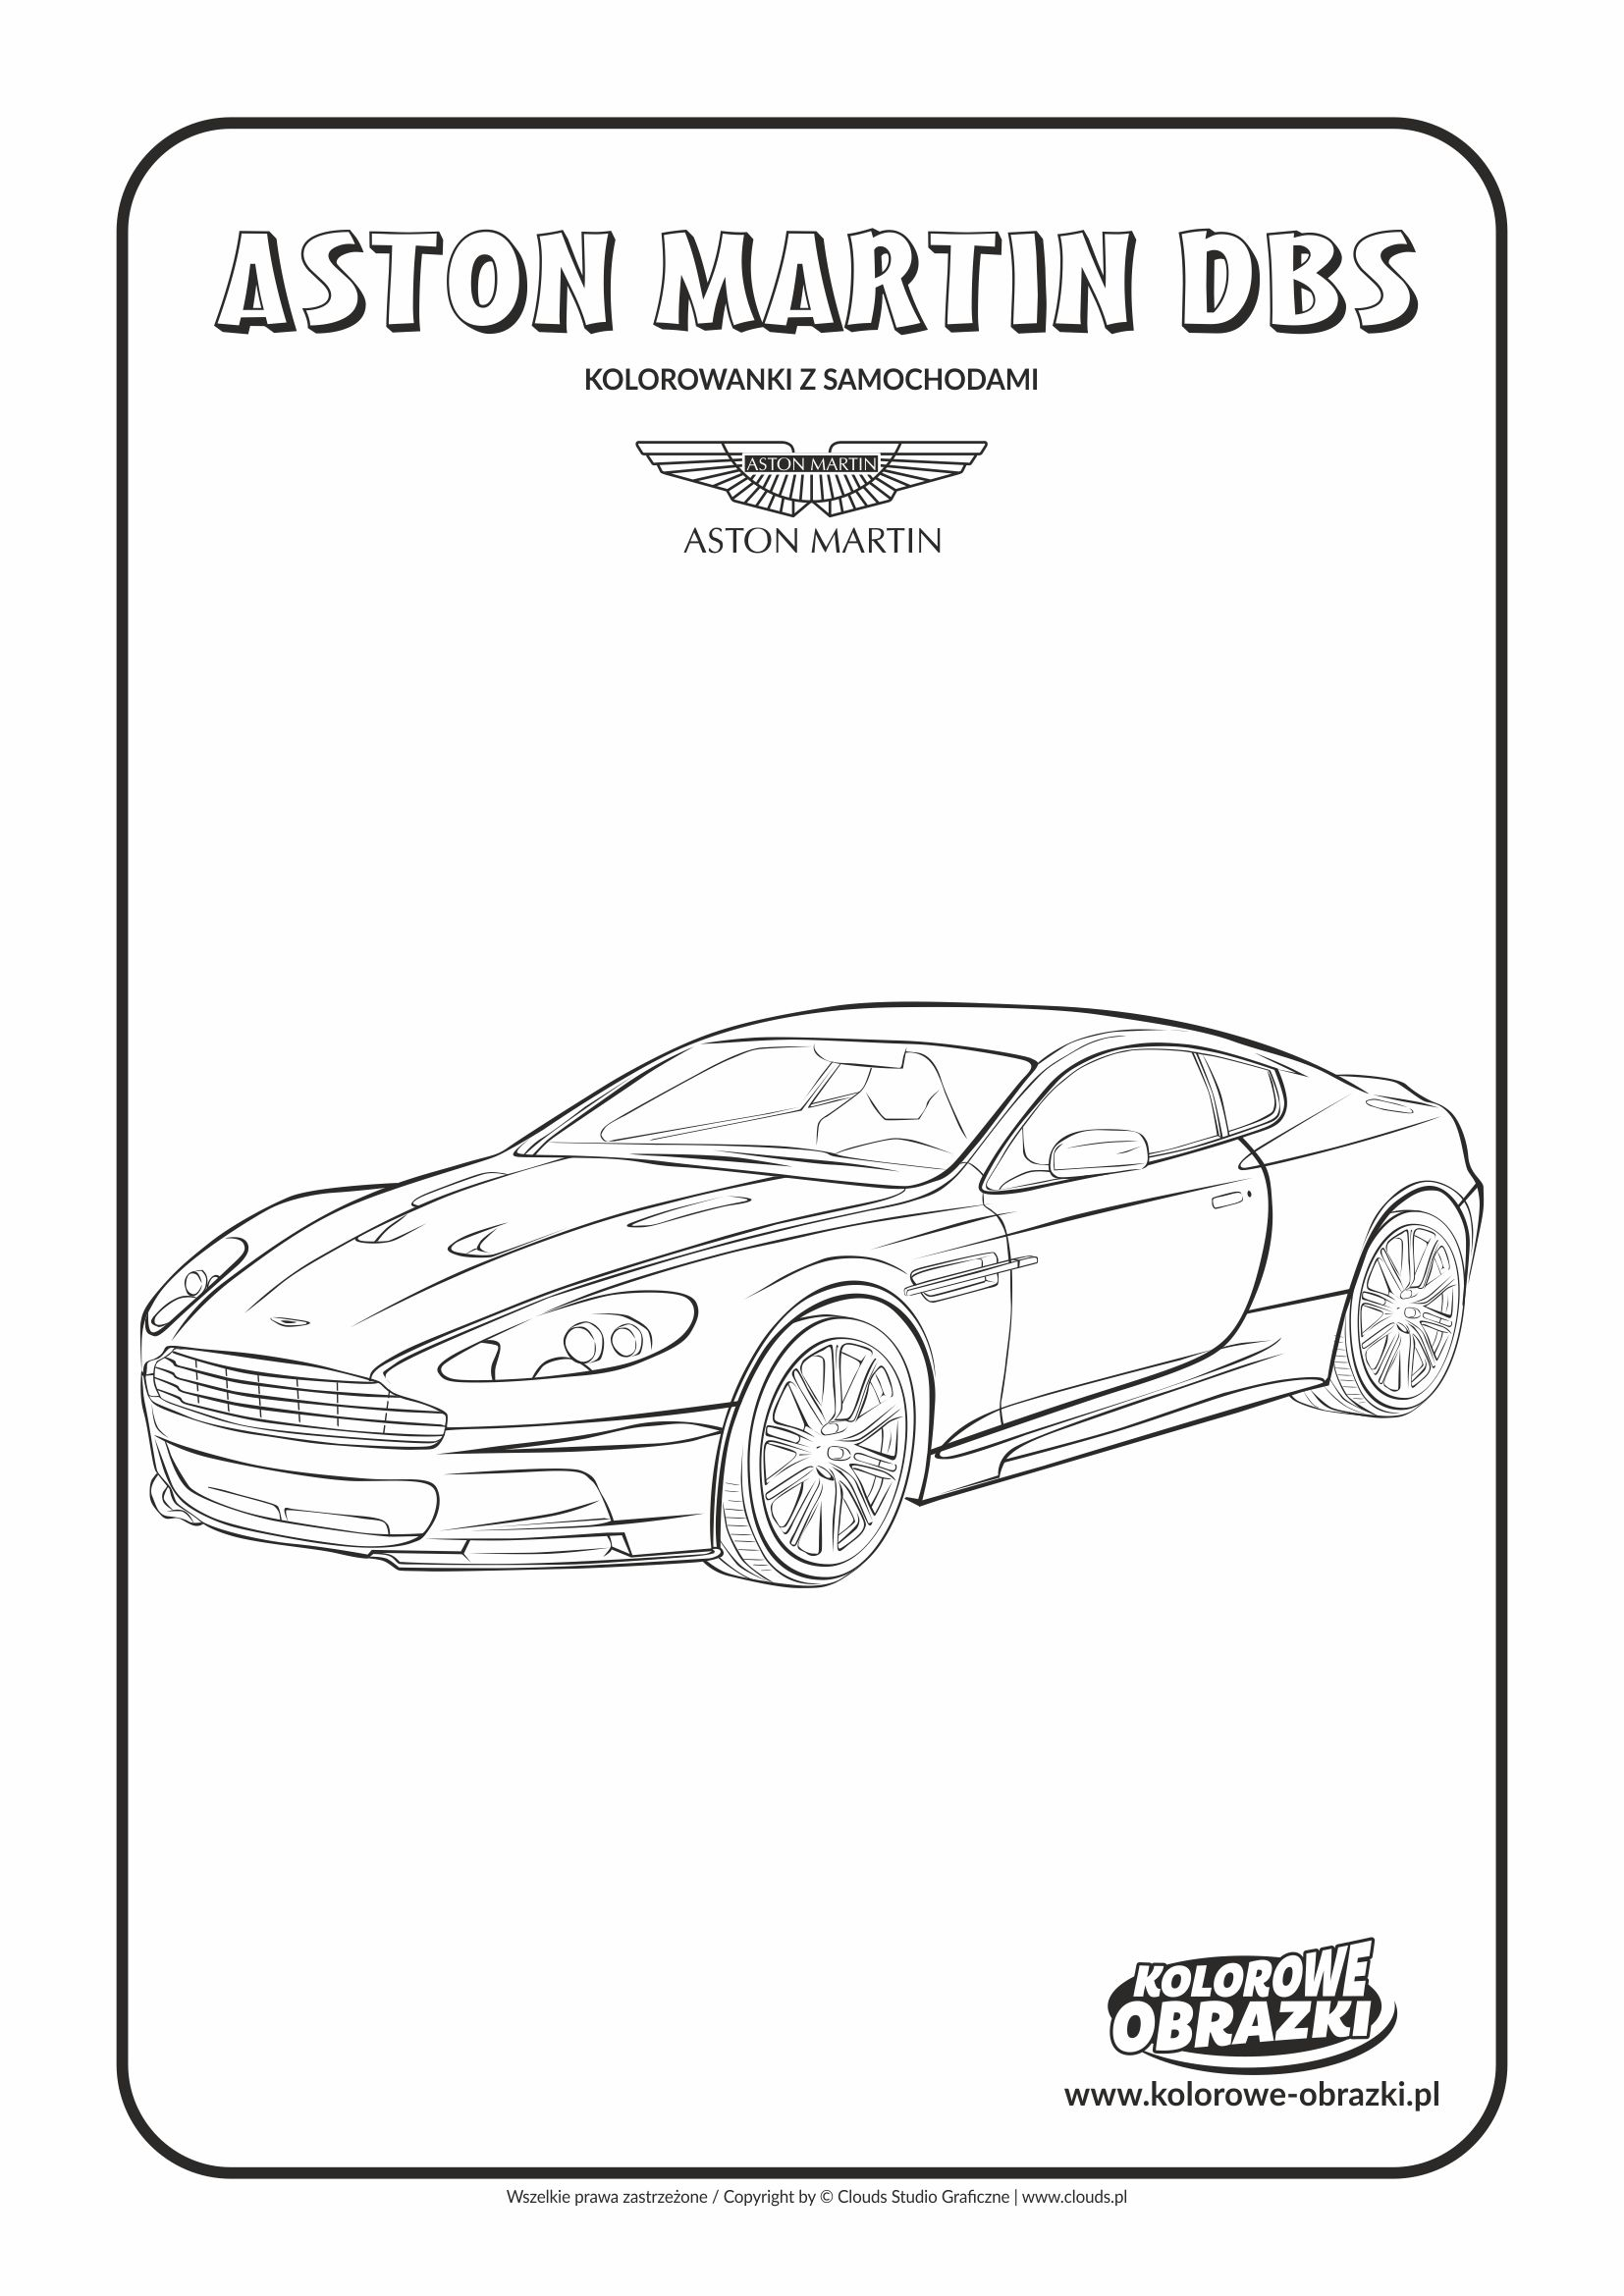 Alfa Romeo 156 Car besides Alarm System Cover also Gearbox Stop Buffer likewise Art Display Easel With Light moreover Cool Car Coloring Pages. on aston martin vantage convertible